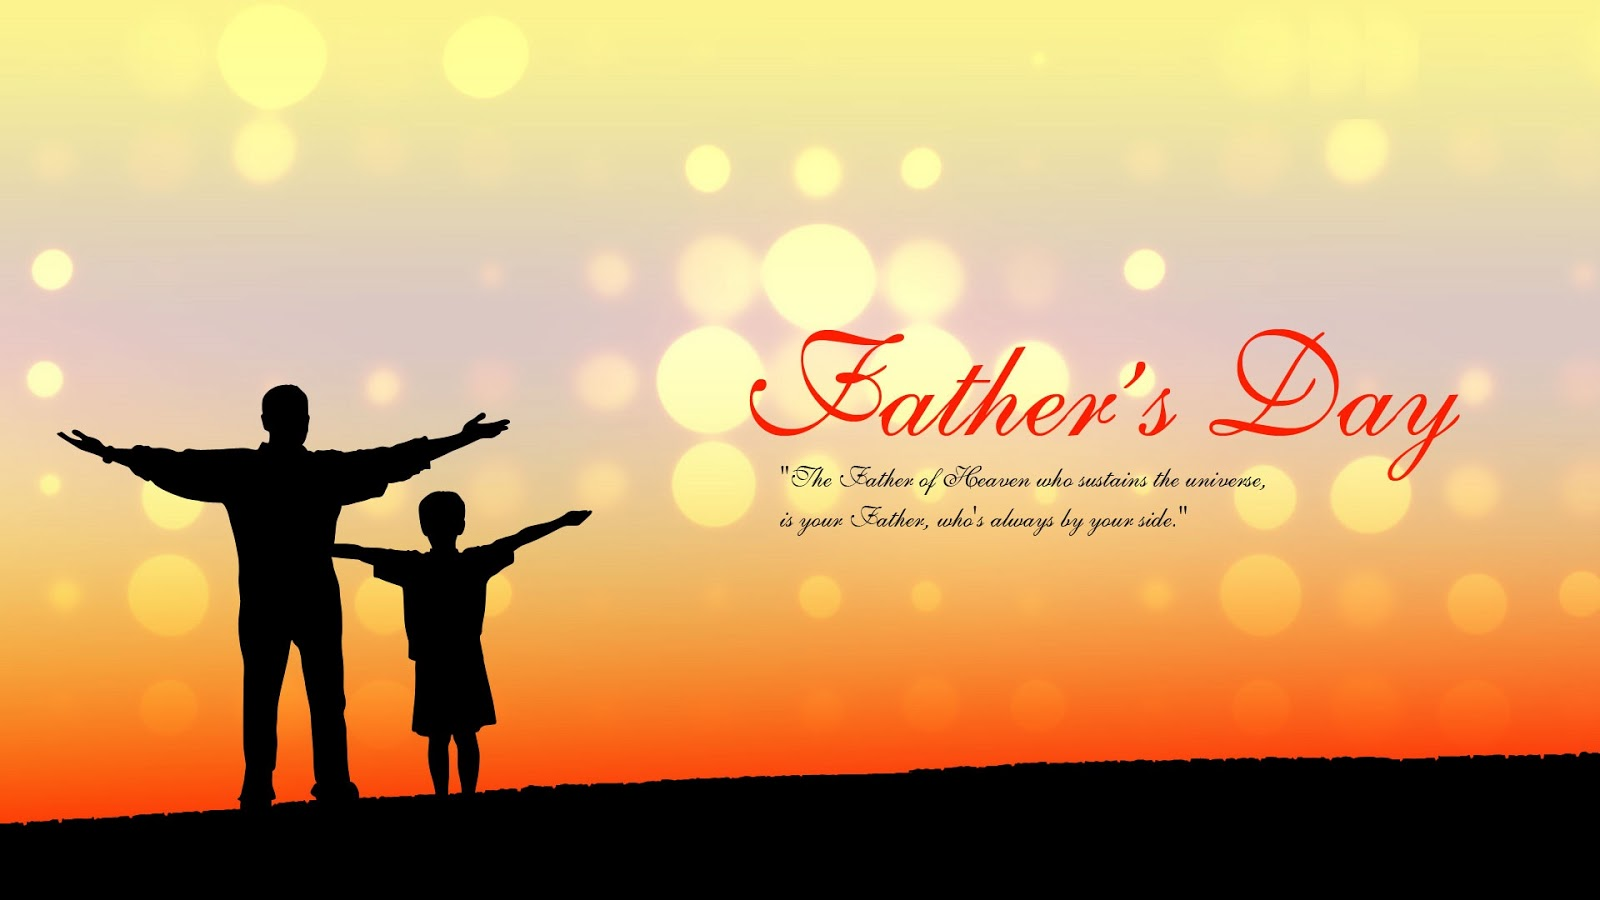 Best Father's Day Wishes, Hot Wonderful Photo Images